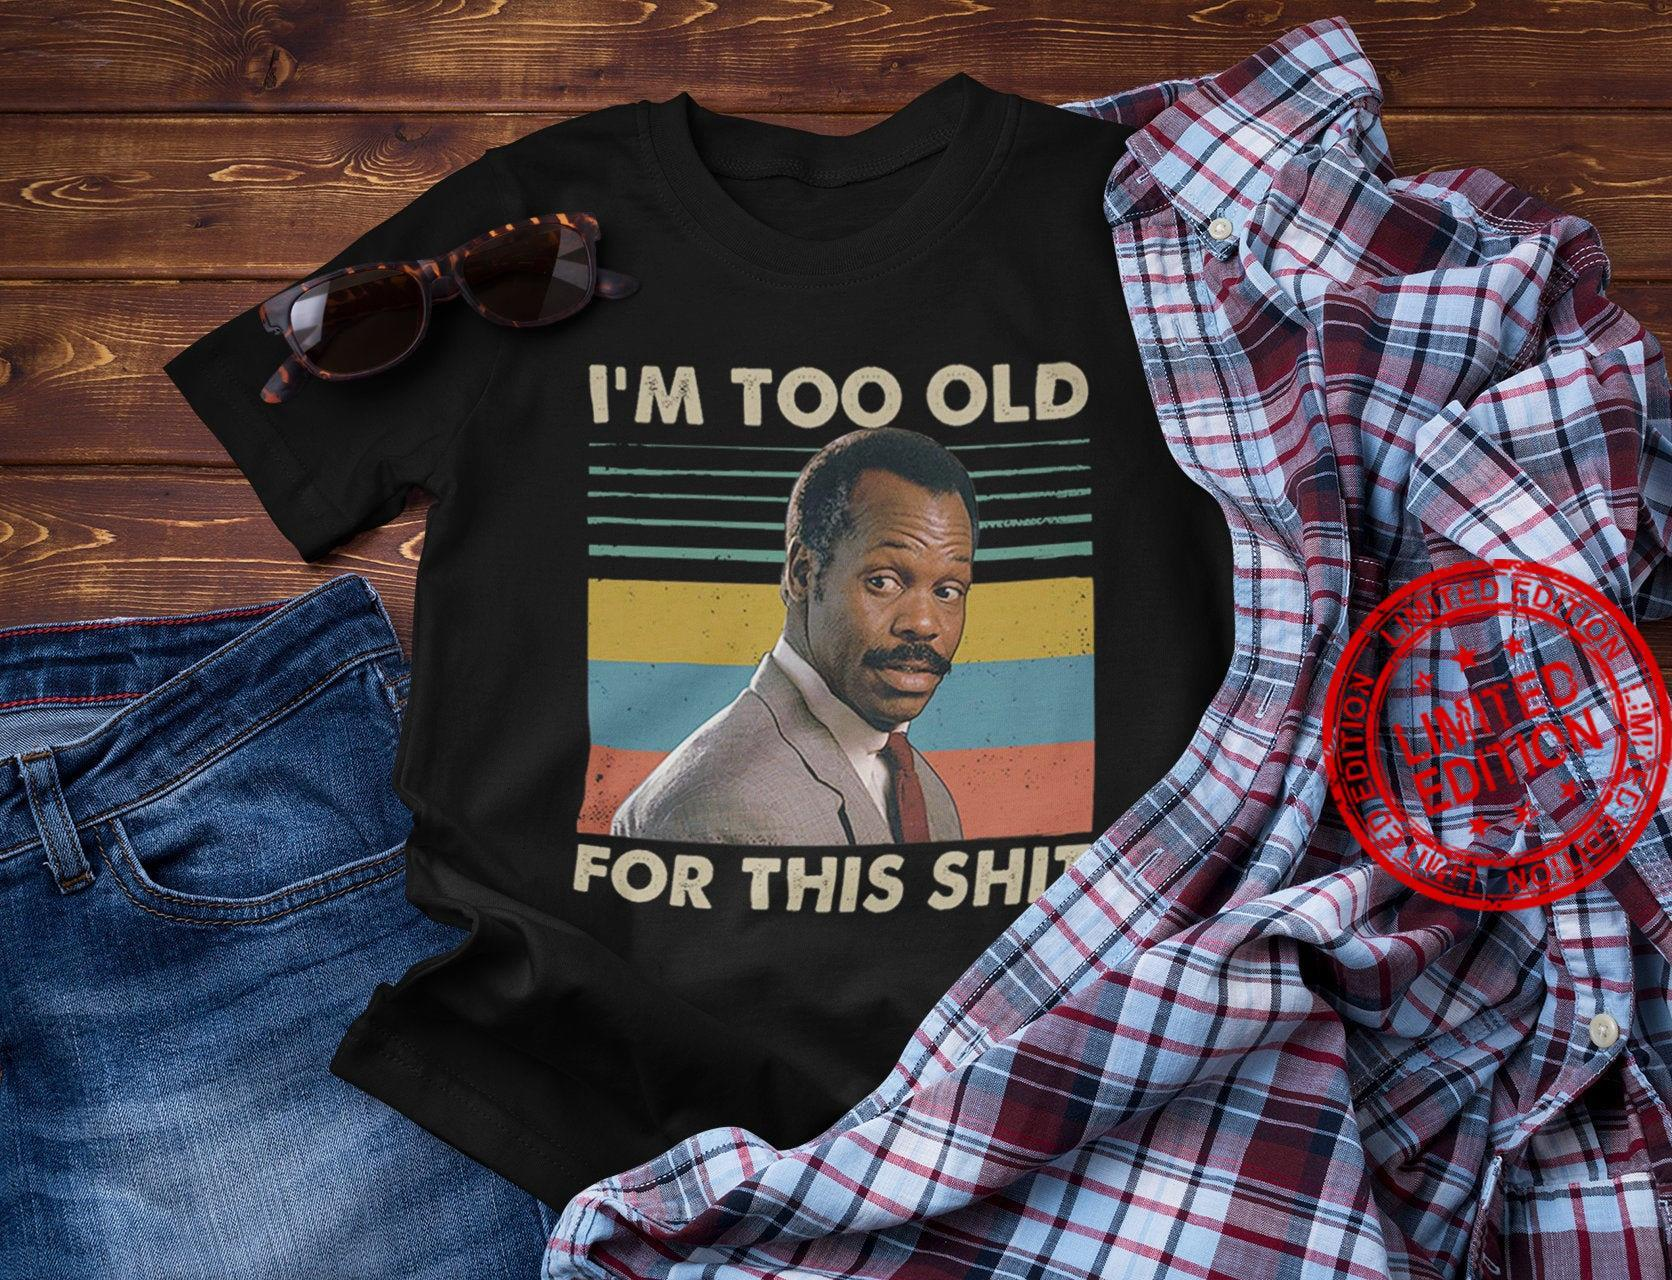 I'm Too Old for This Shit Vintage Danny Glover Lethal Weapon Shirt